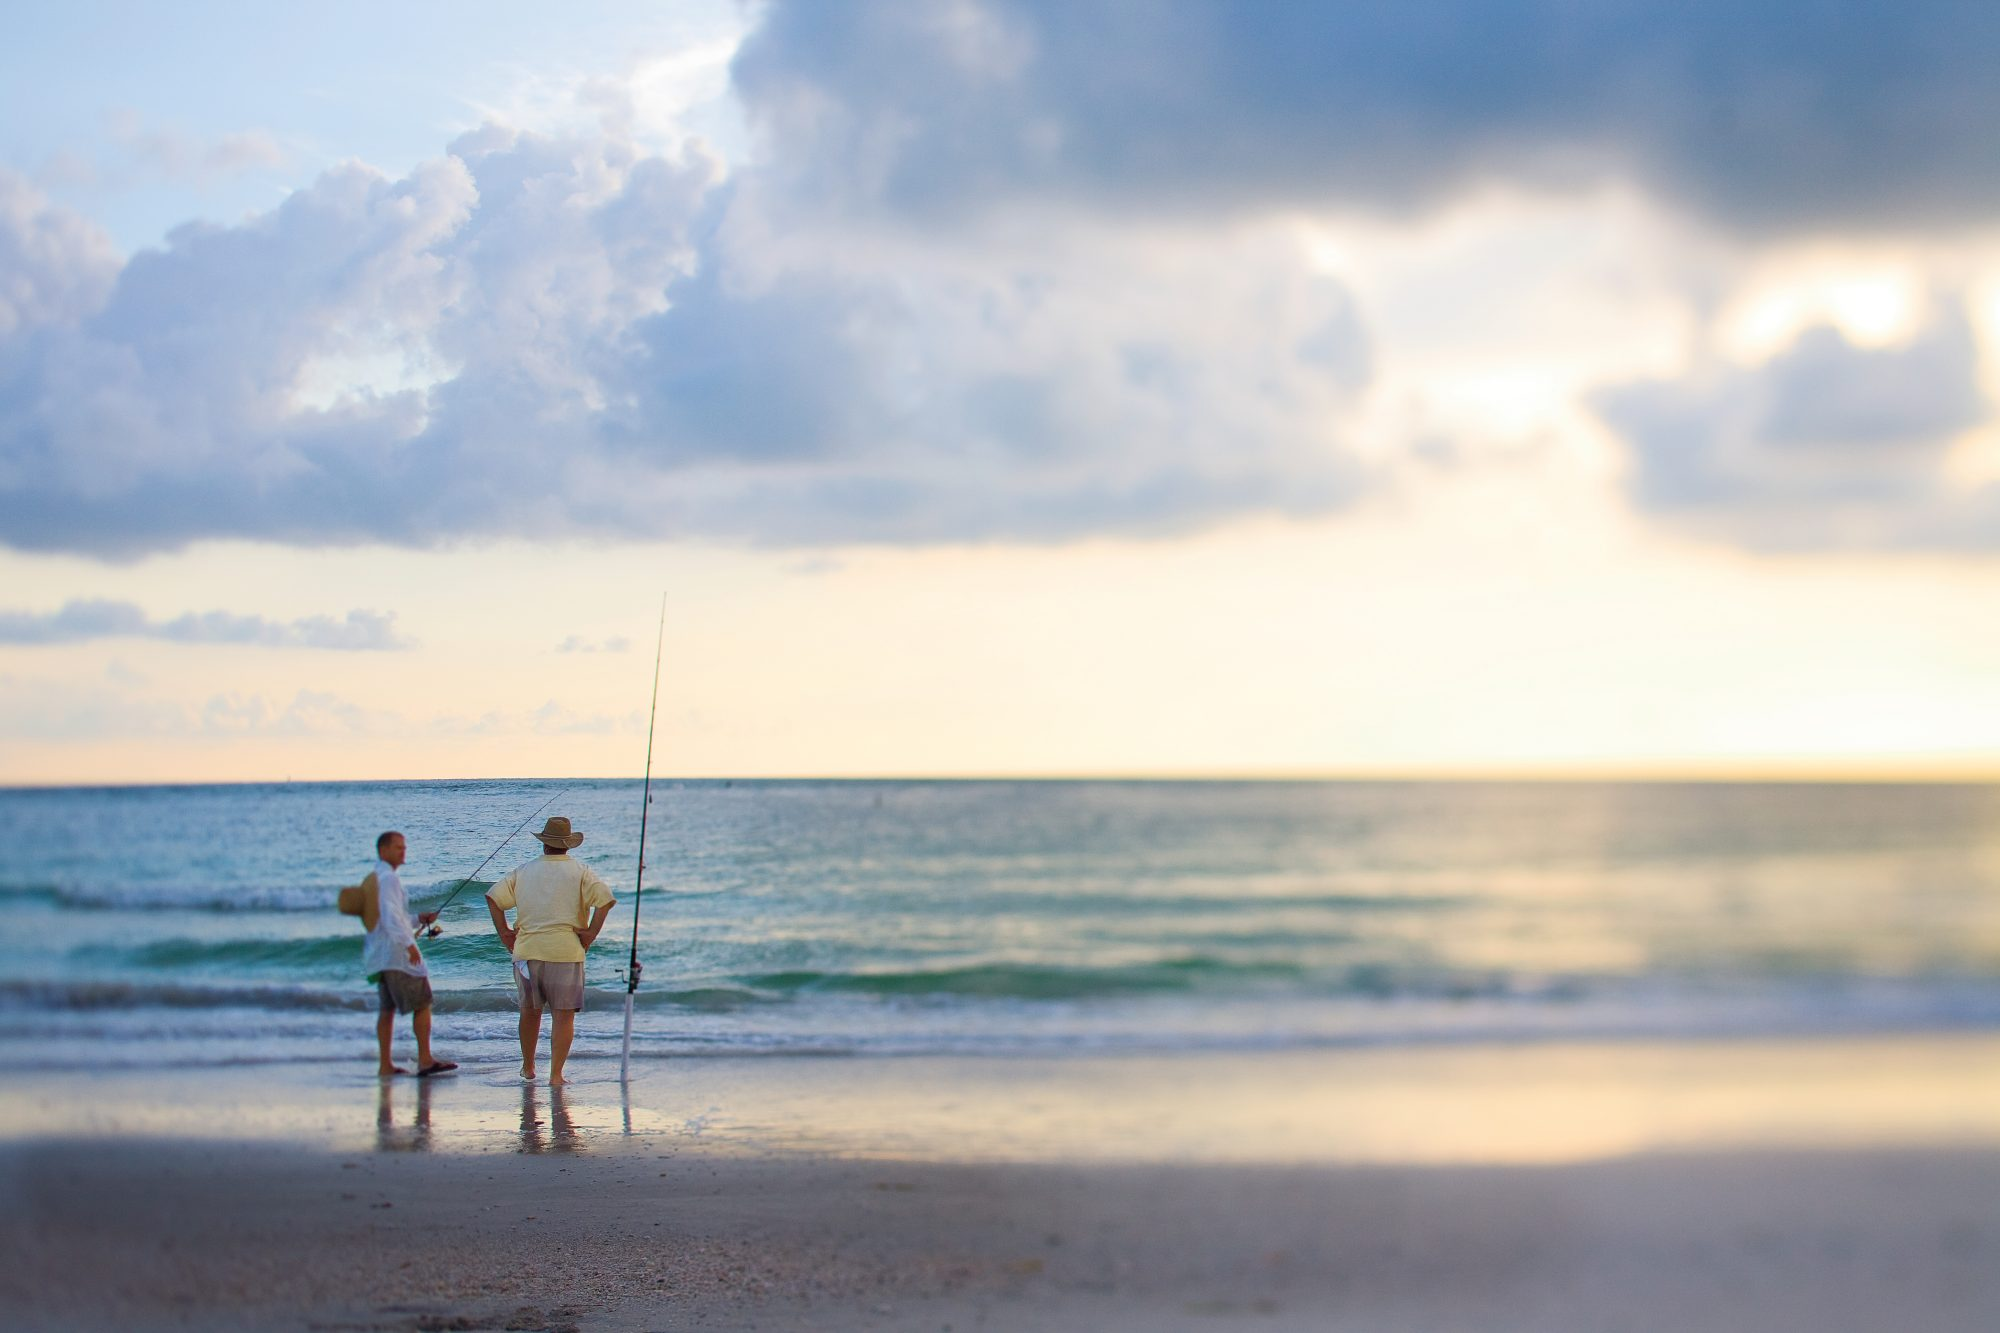 Florida Beach Vacation: St. Pete Beach Fishing